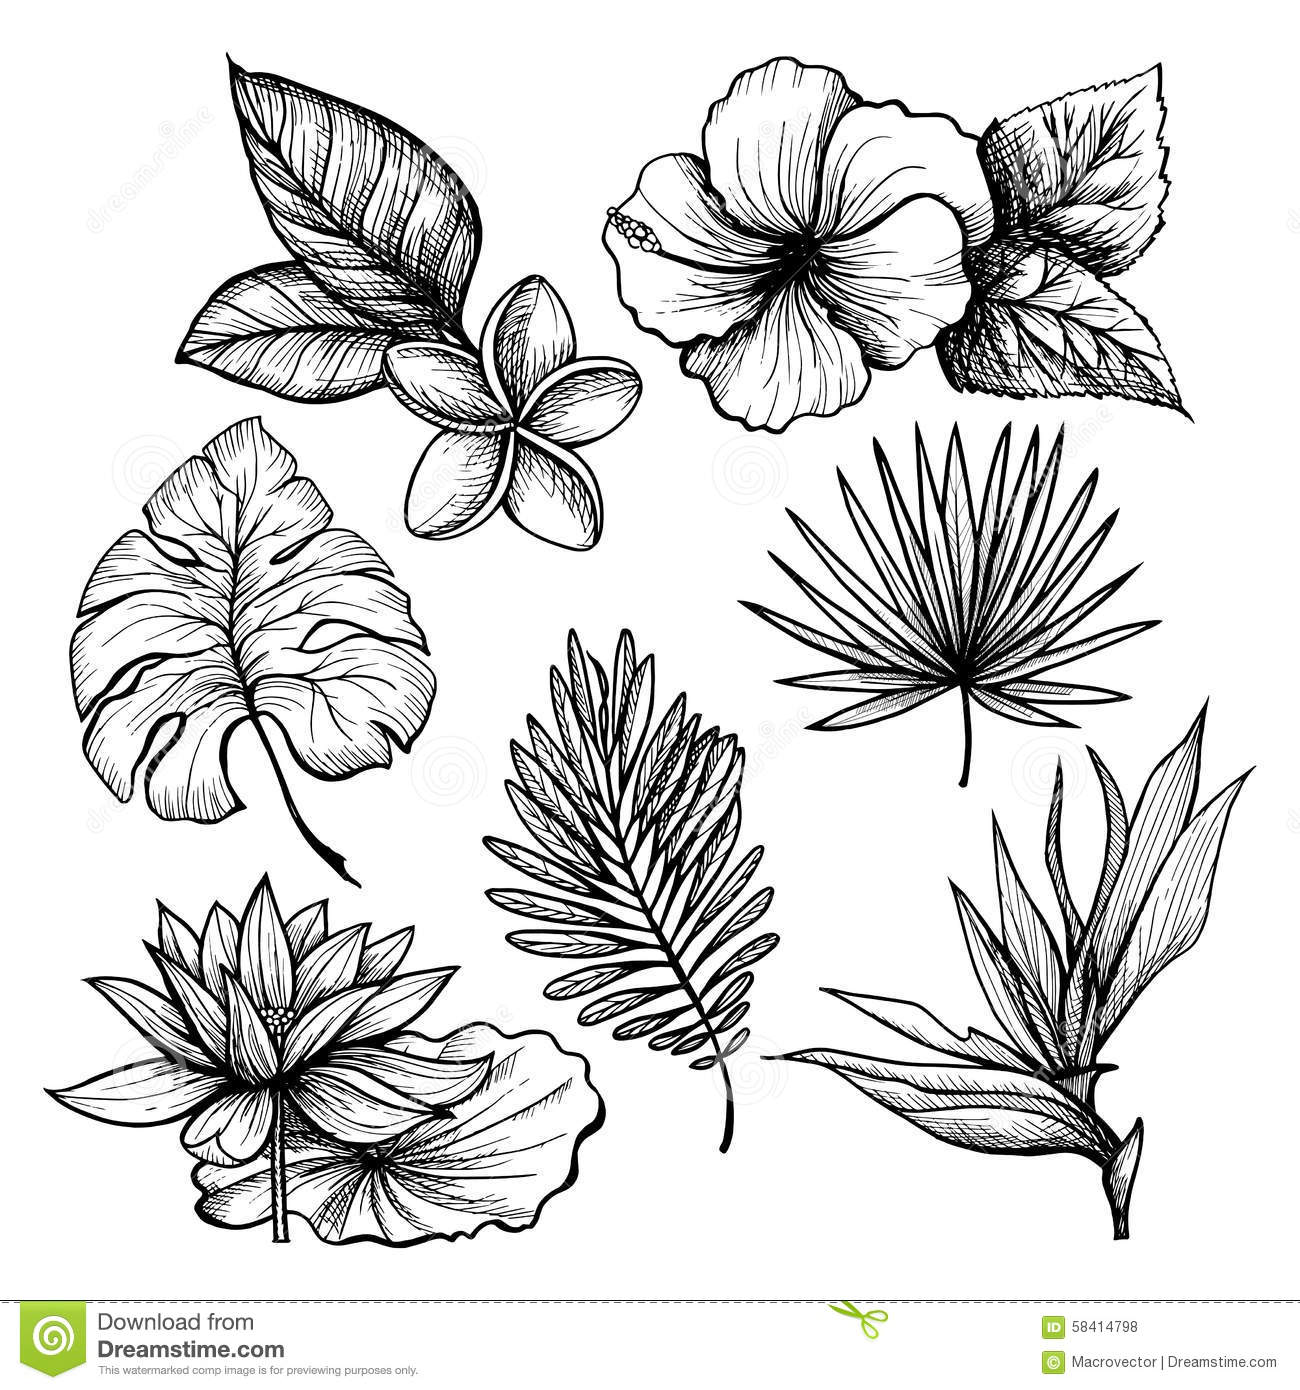 Hawaiian Flower Line Drawing : Tropical leaves set stock vector illustration of elements